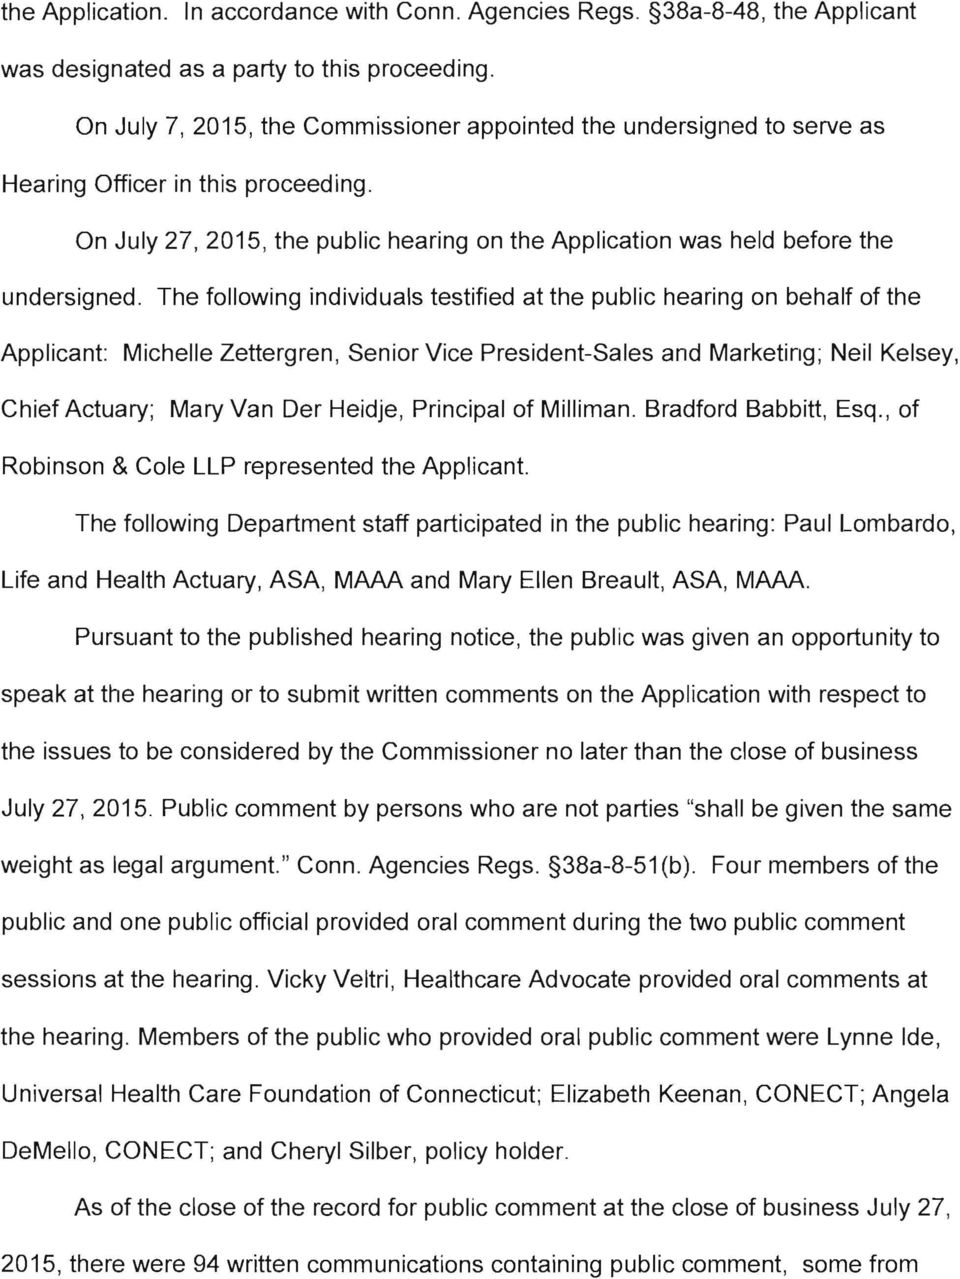 The following individuals testified at the public hearing on behalf of the Applicant: Michelle Zettergren, Senior Vice President-Sales and Marketing; Neil Kelsey, Chief Actuary; Mary Van Der Heidje,